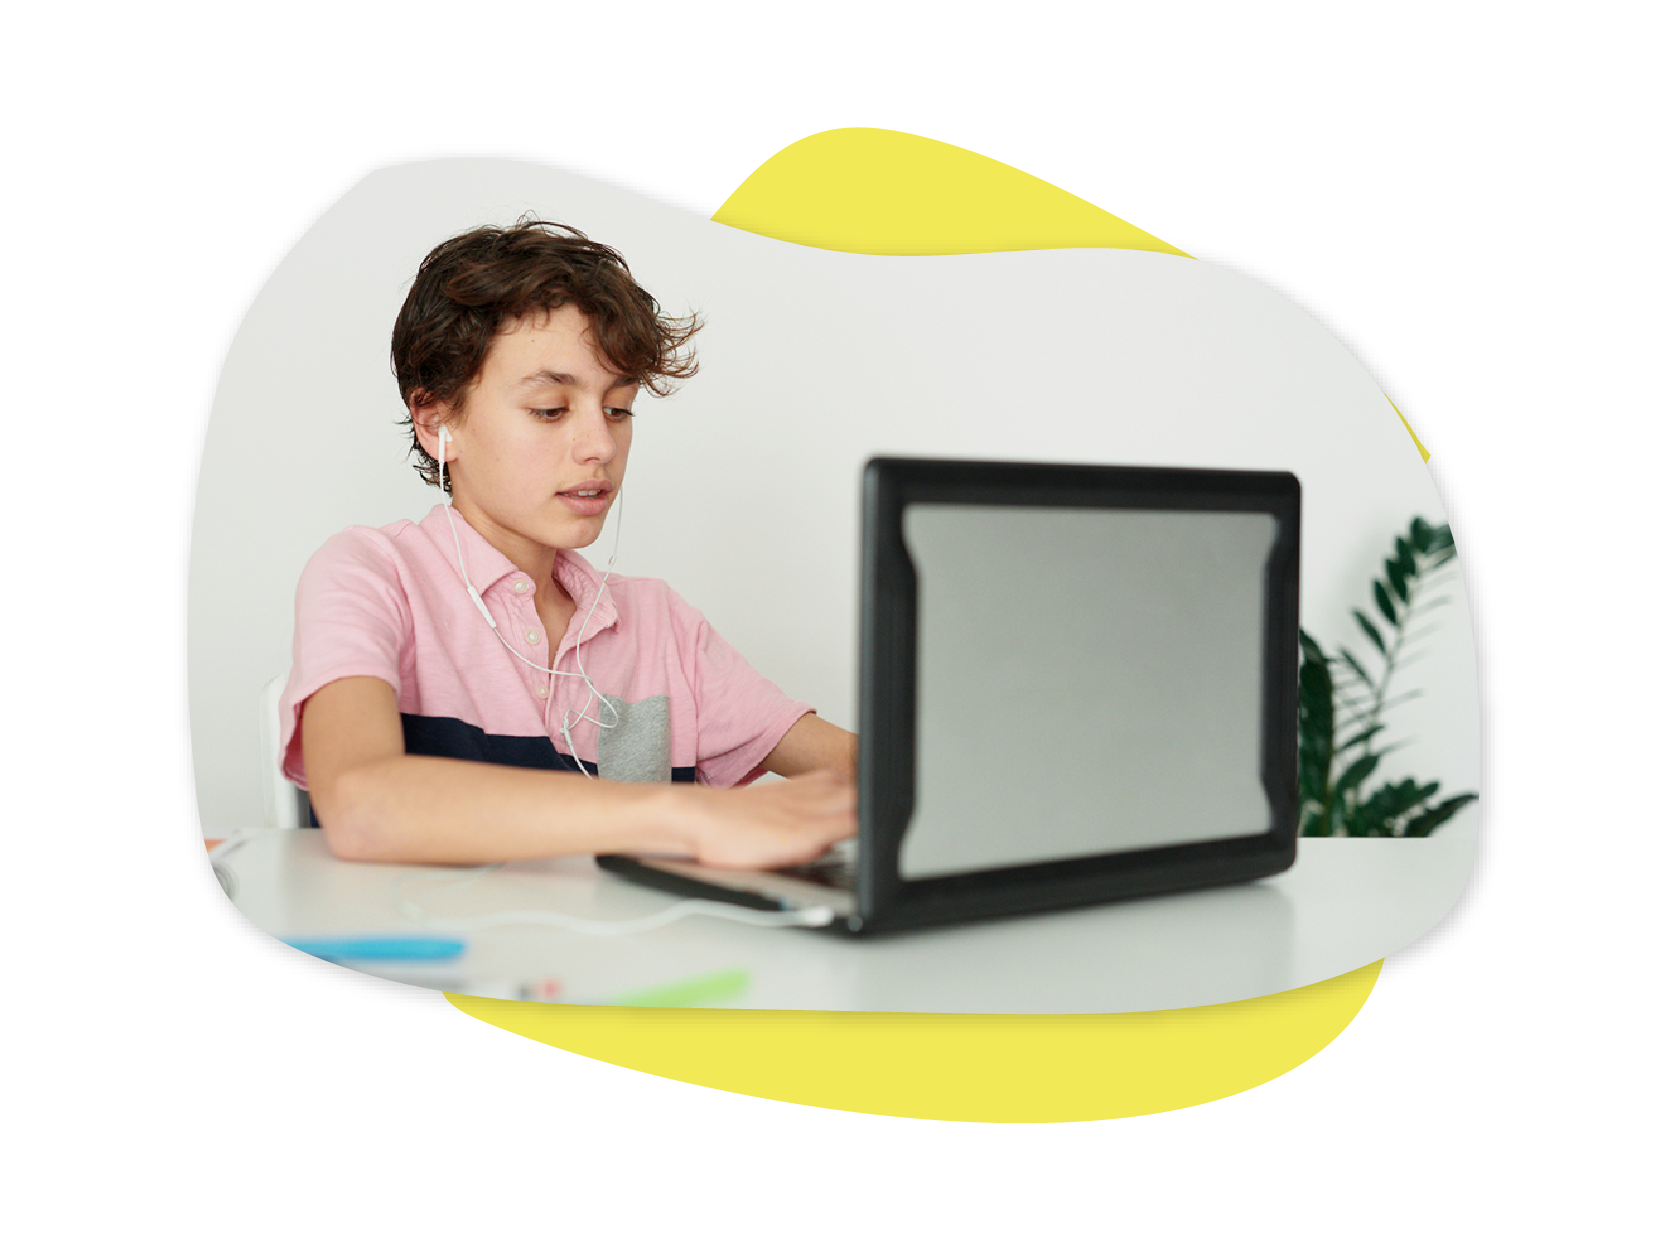 A Caucasian boy sitting at a desk and typing on a laptop